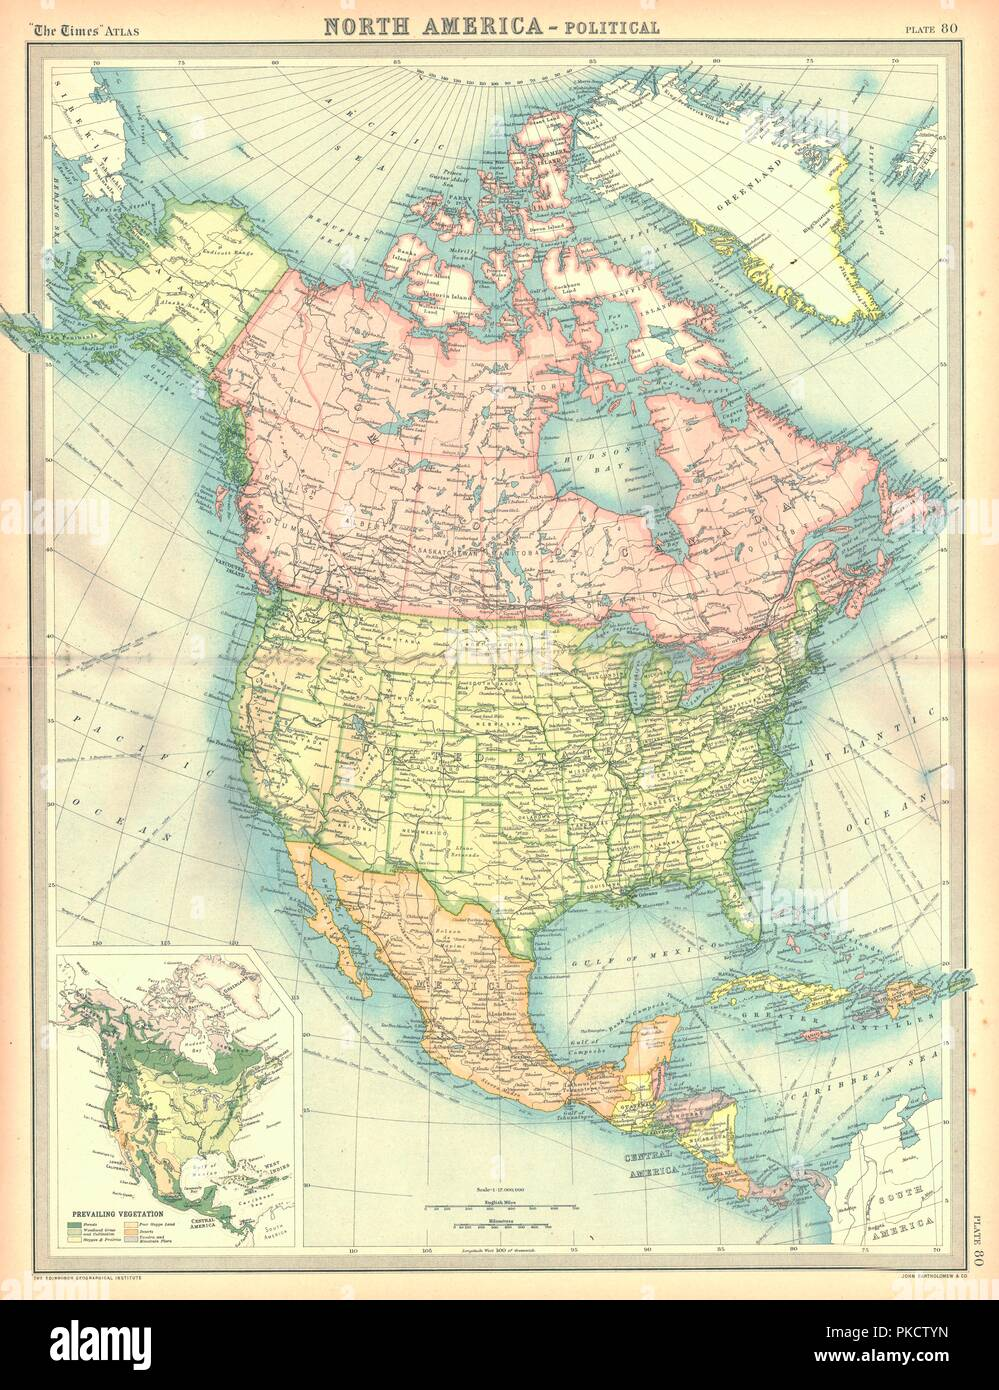 political map of north america map showing canada the united